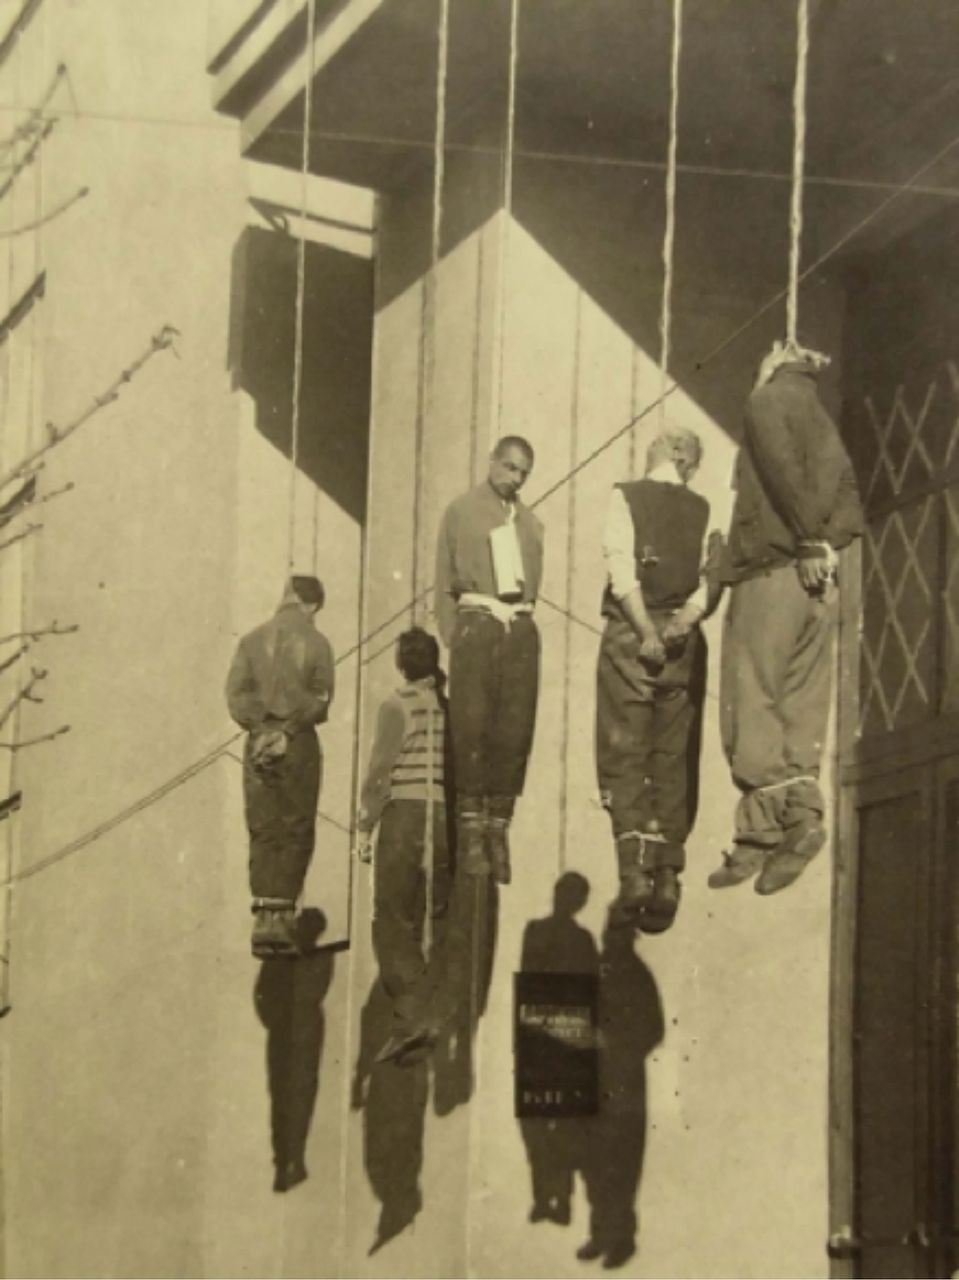 Ukraine, Kharkov, Civilians hanged by the Germans in retaliation for a terrorist attack on German headquarters, November 1941 [© Yad Vashem Photo Archive]